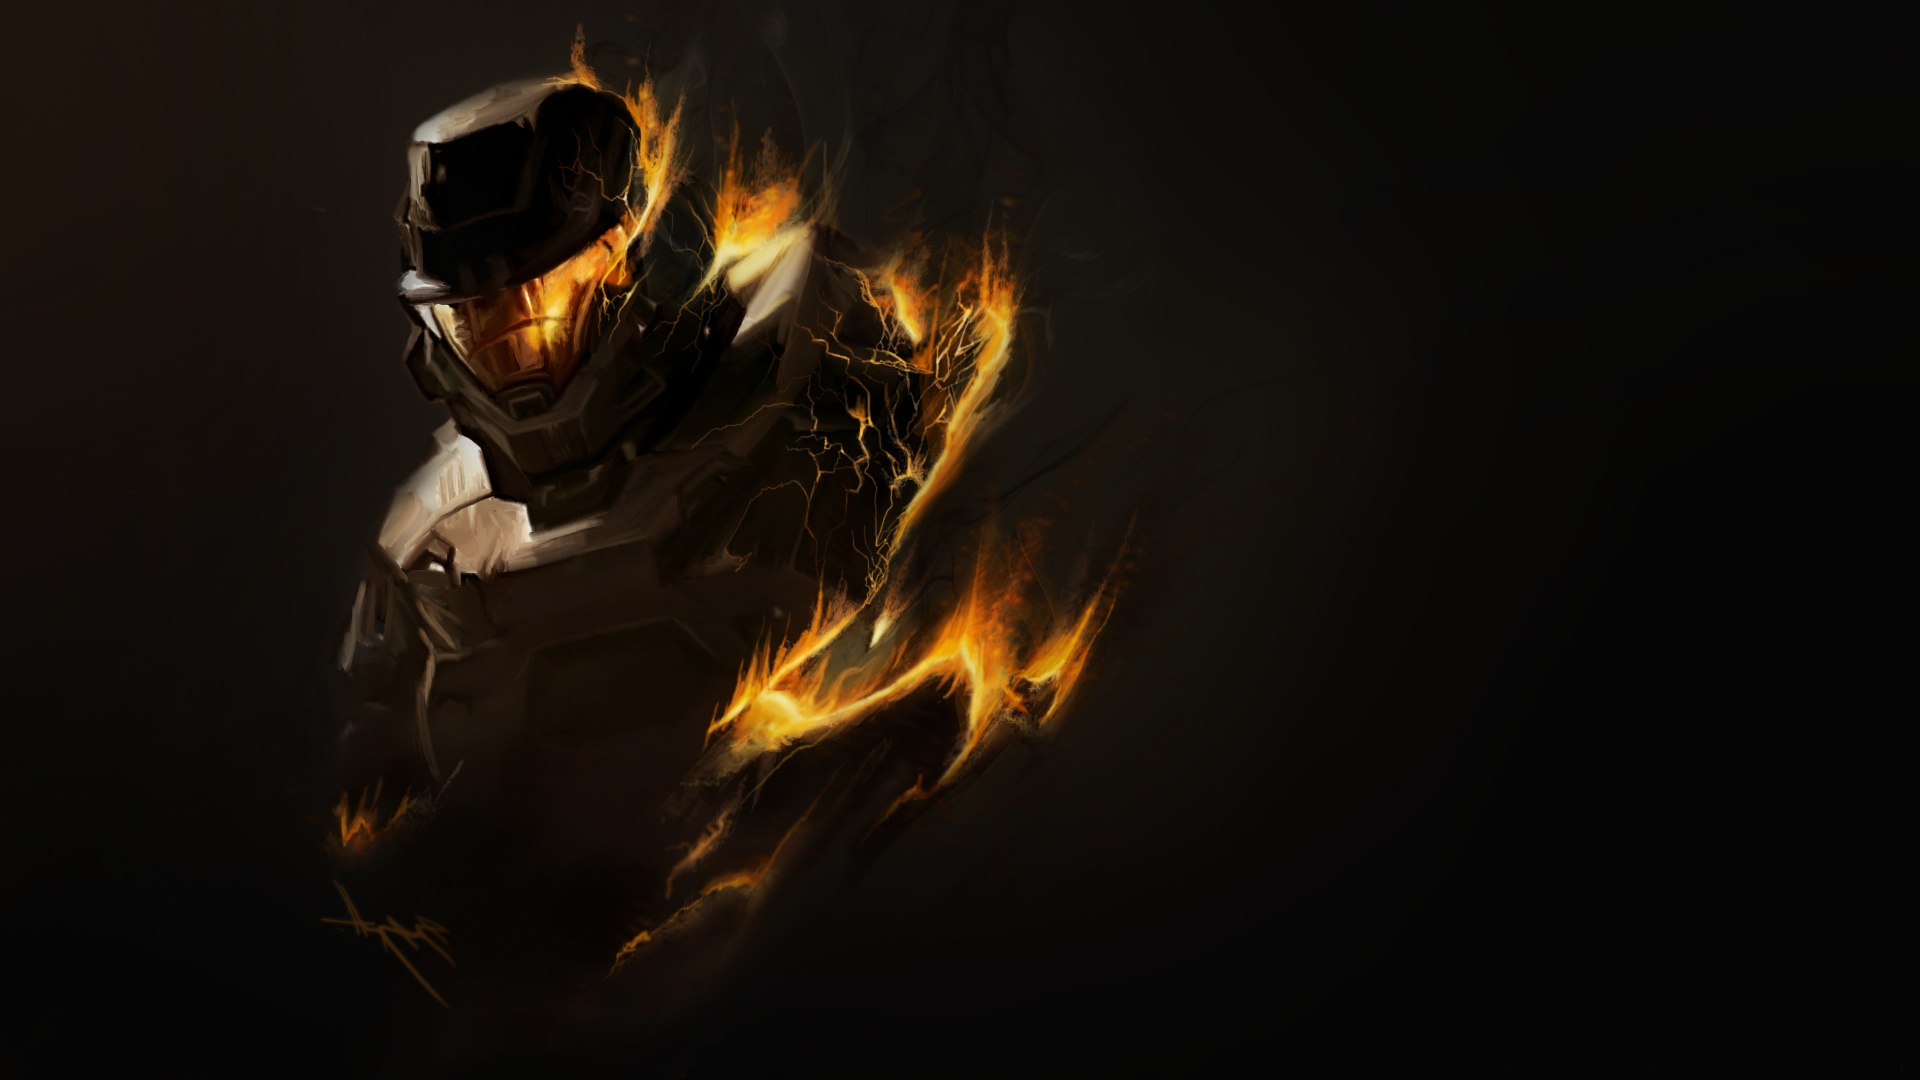 tags halo halo reach date 12 01 31 resolution 1920x1080 avg dl time 1 1920x1080